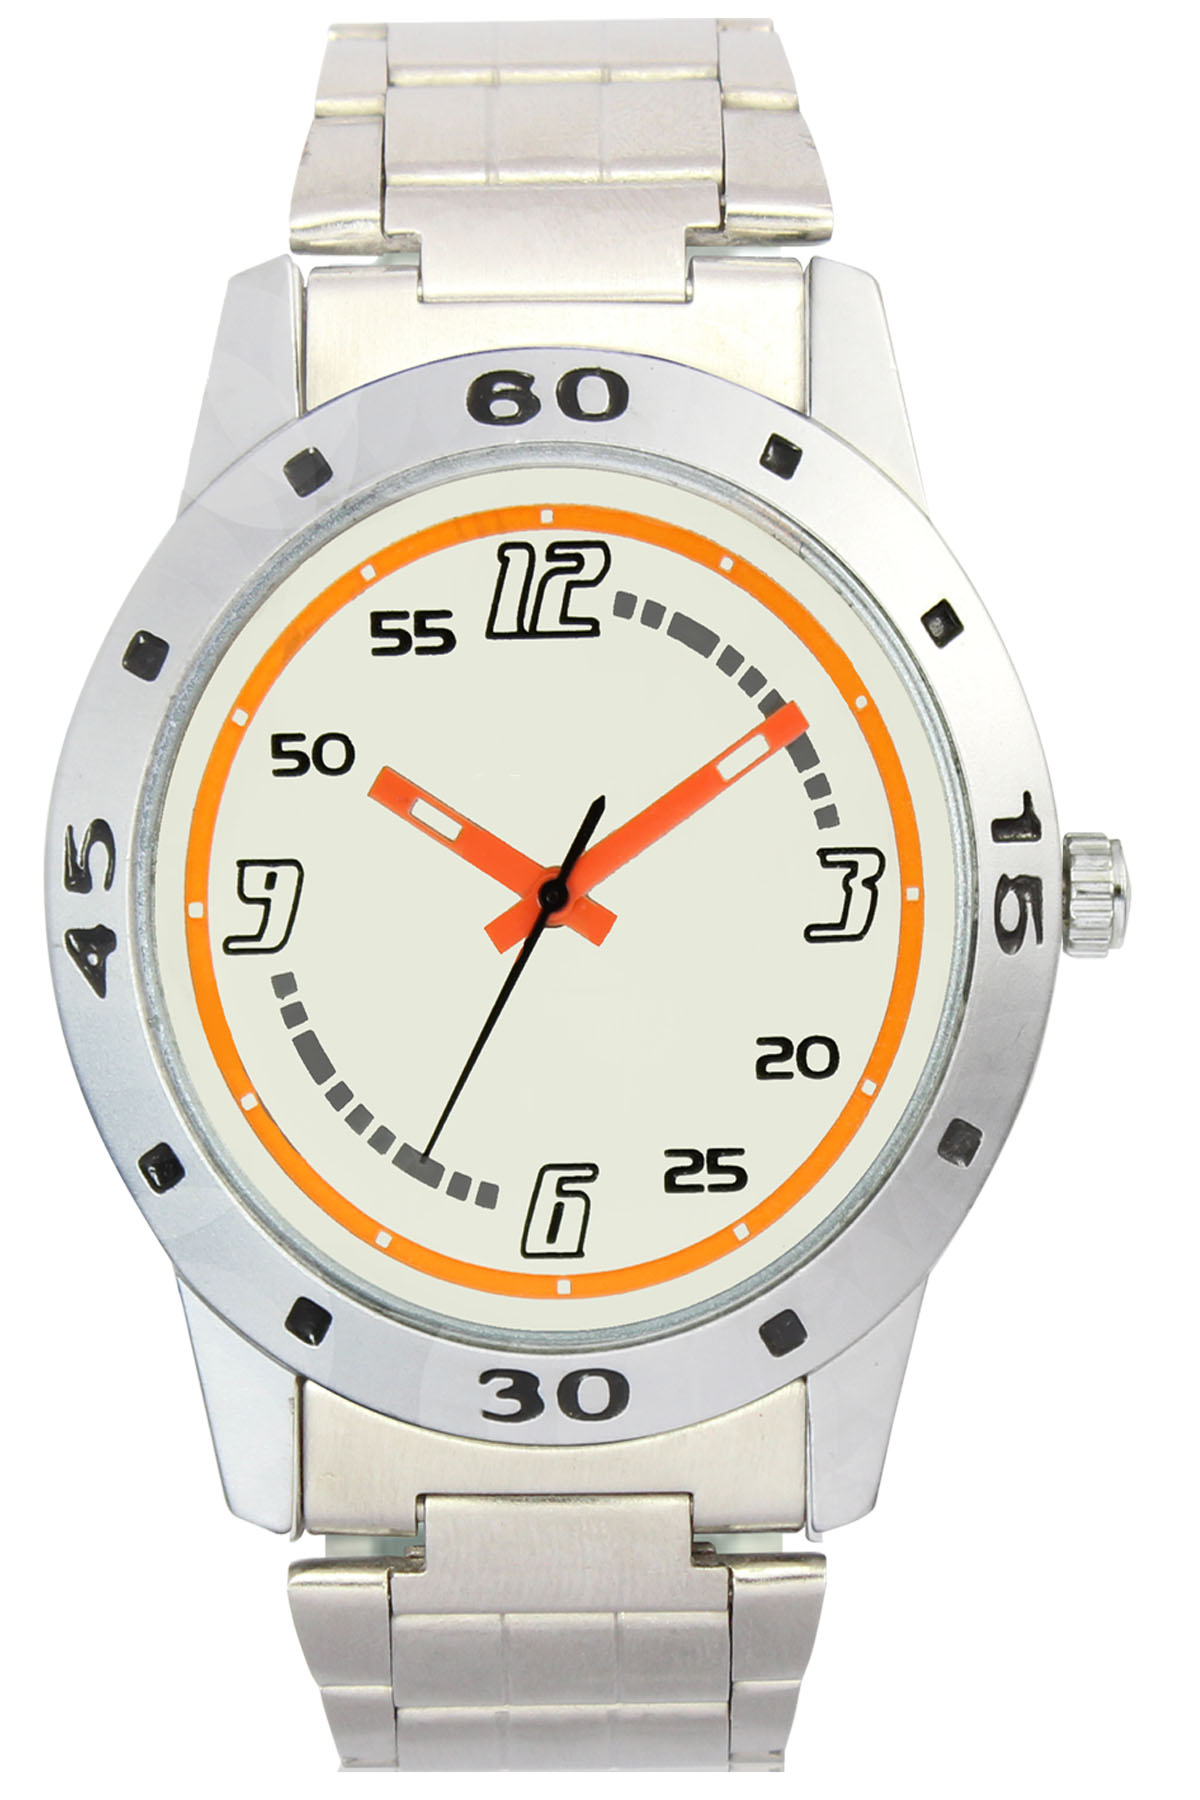 Special Designer Dial Waterproof Simple looks21 Watch   For Men